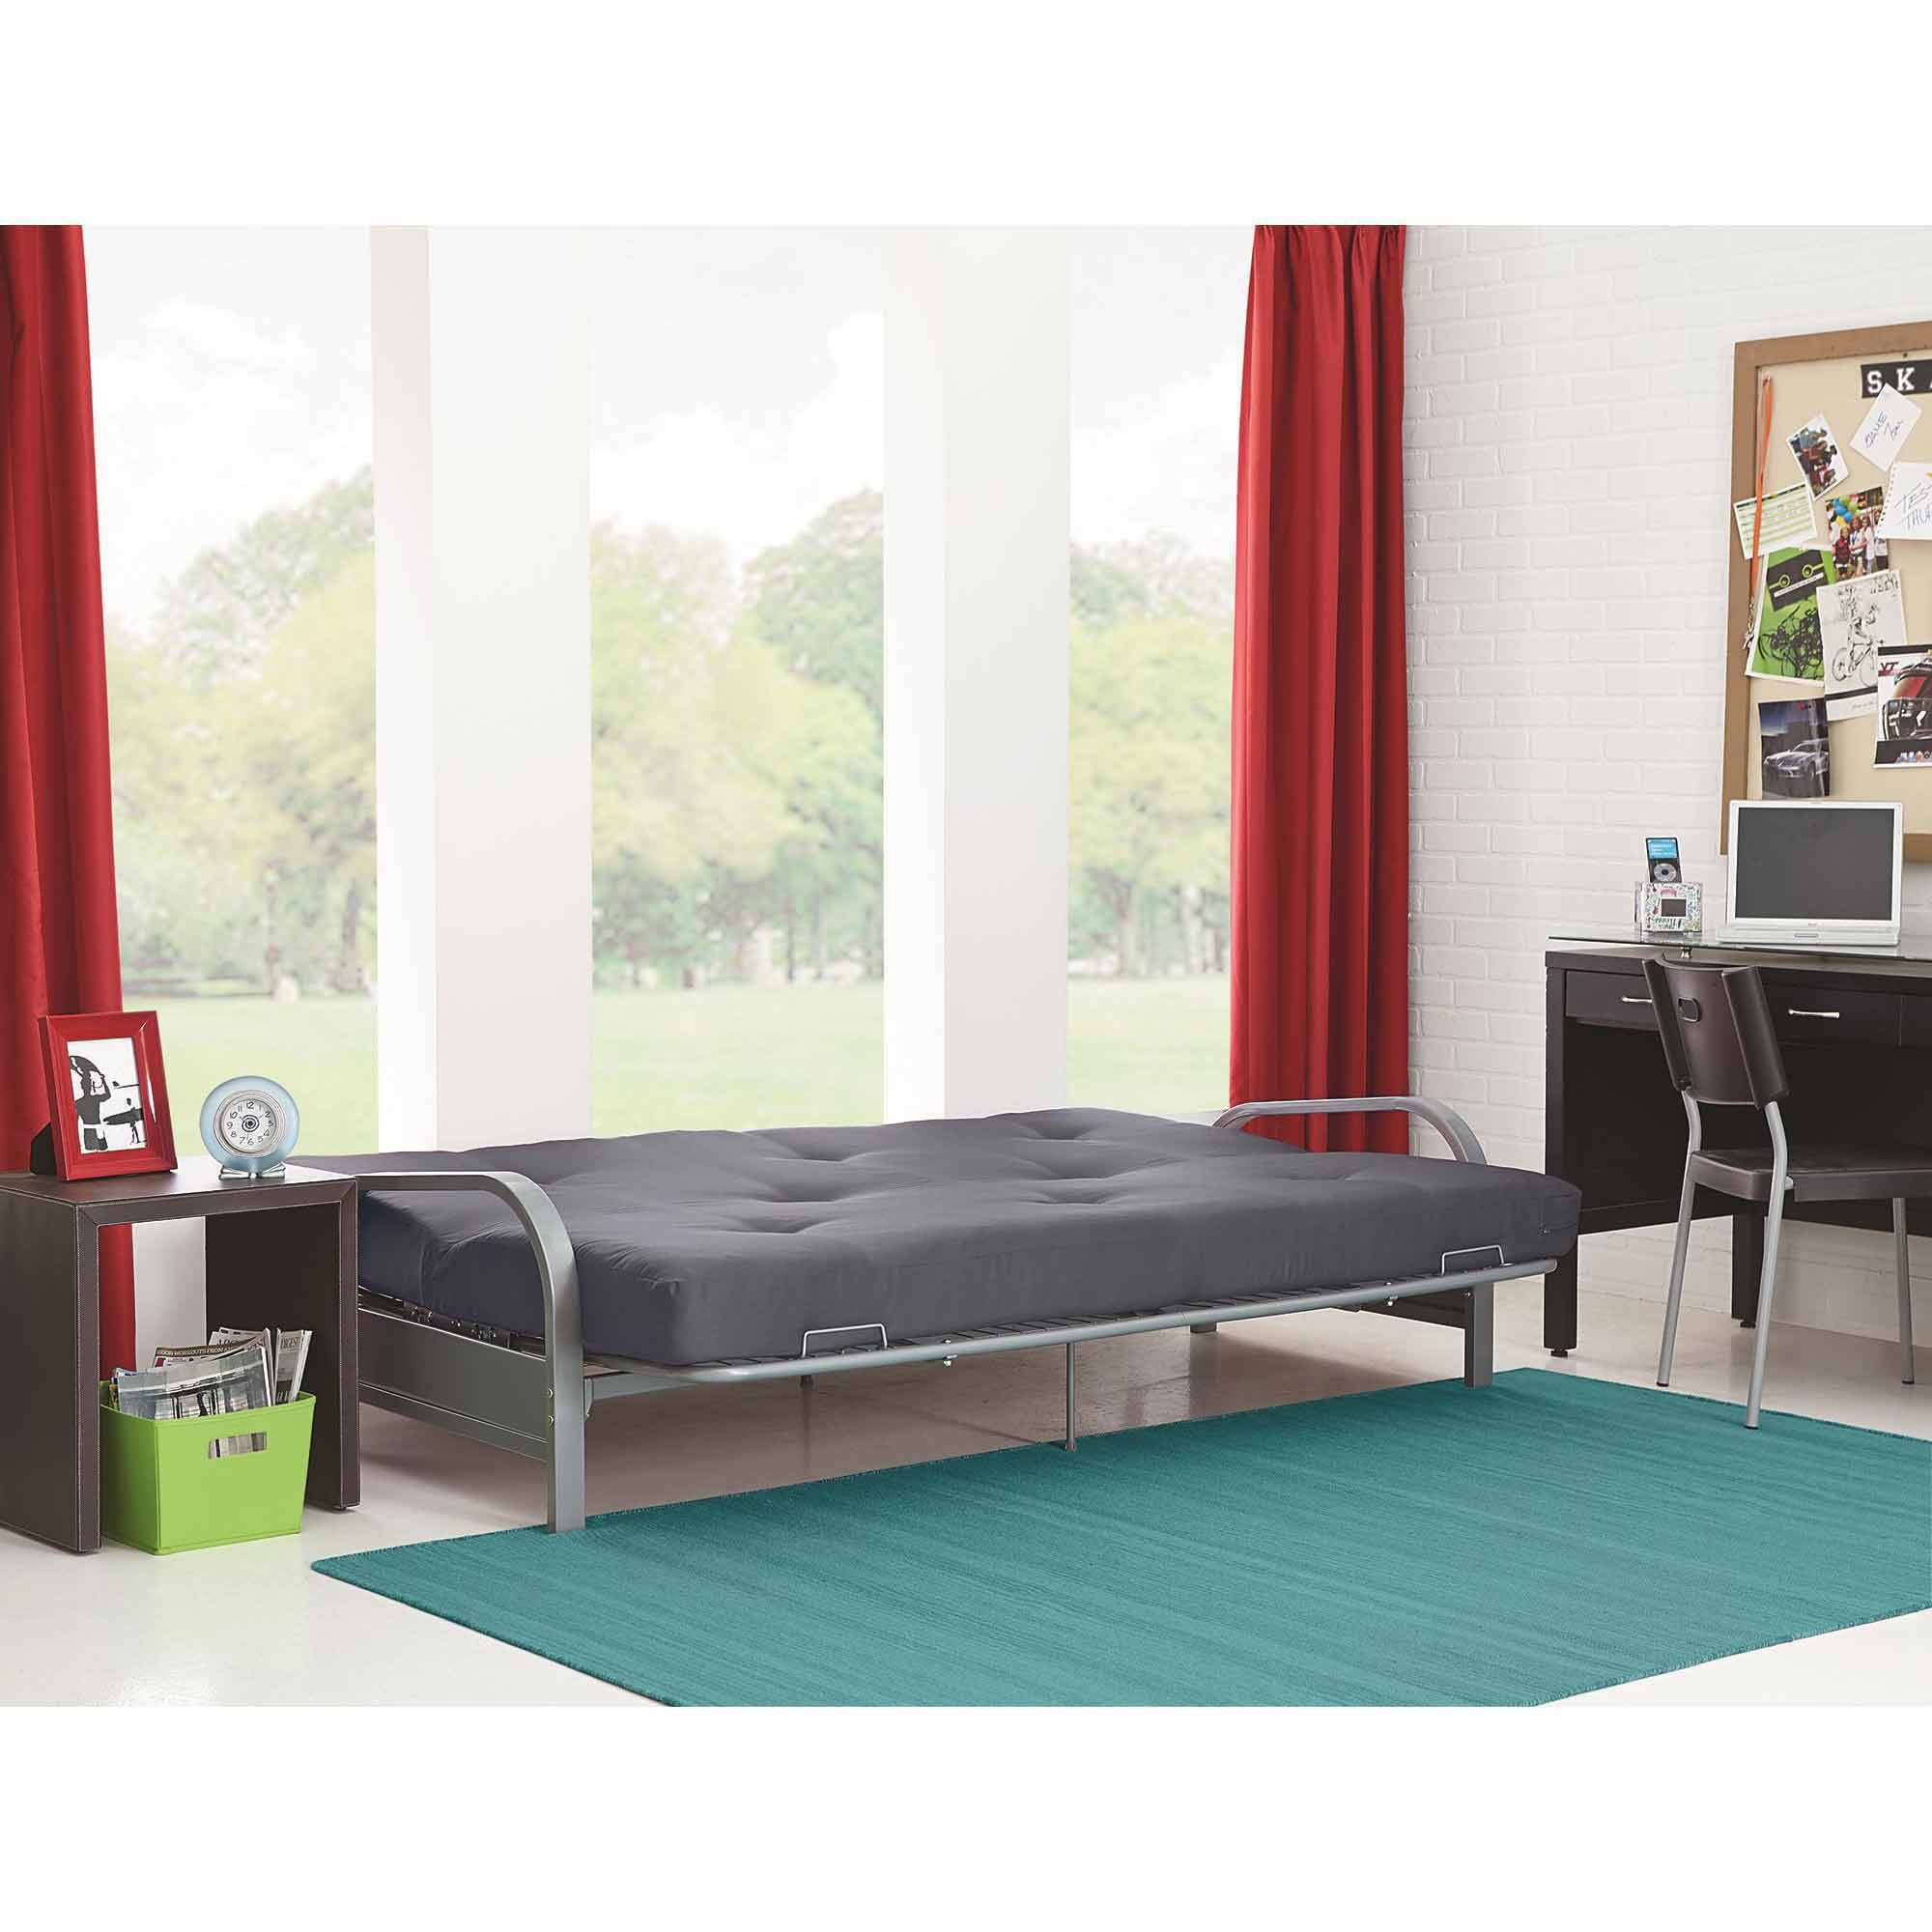 address chill delivery p chairbed friend big chair fabric next htm futon black email img day s mattress